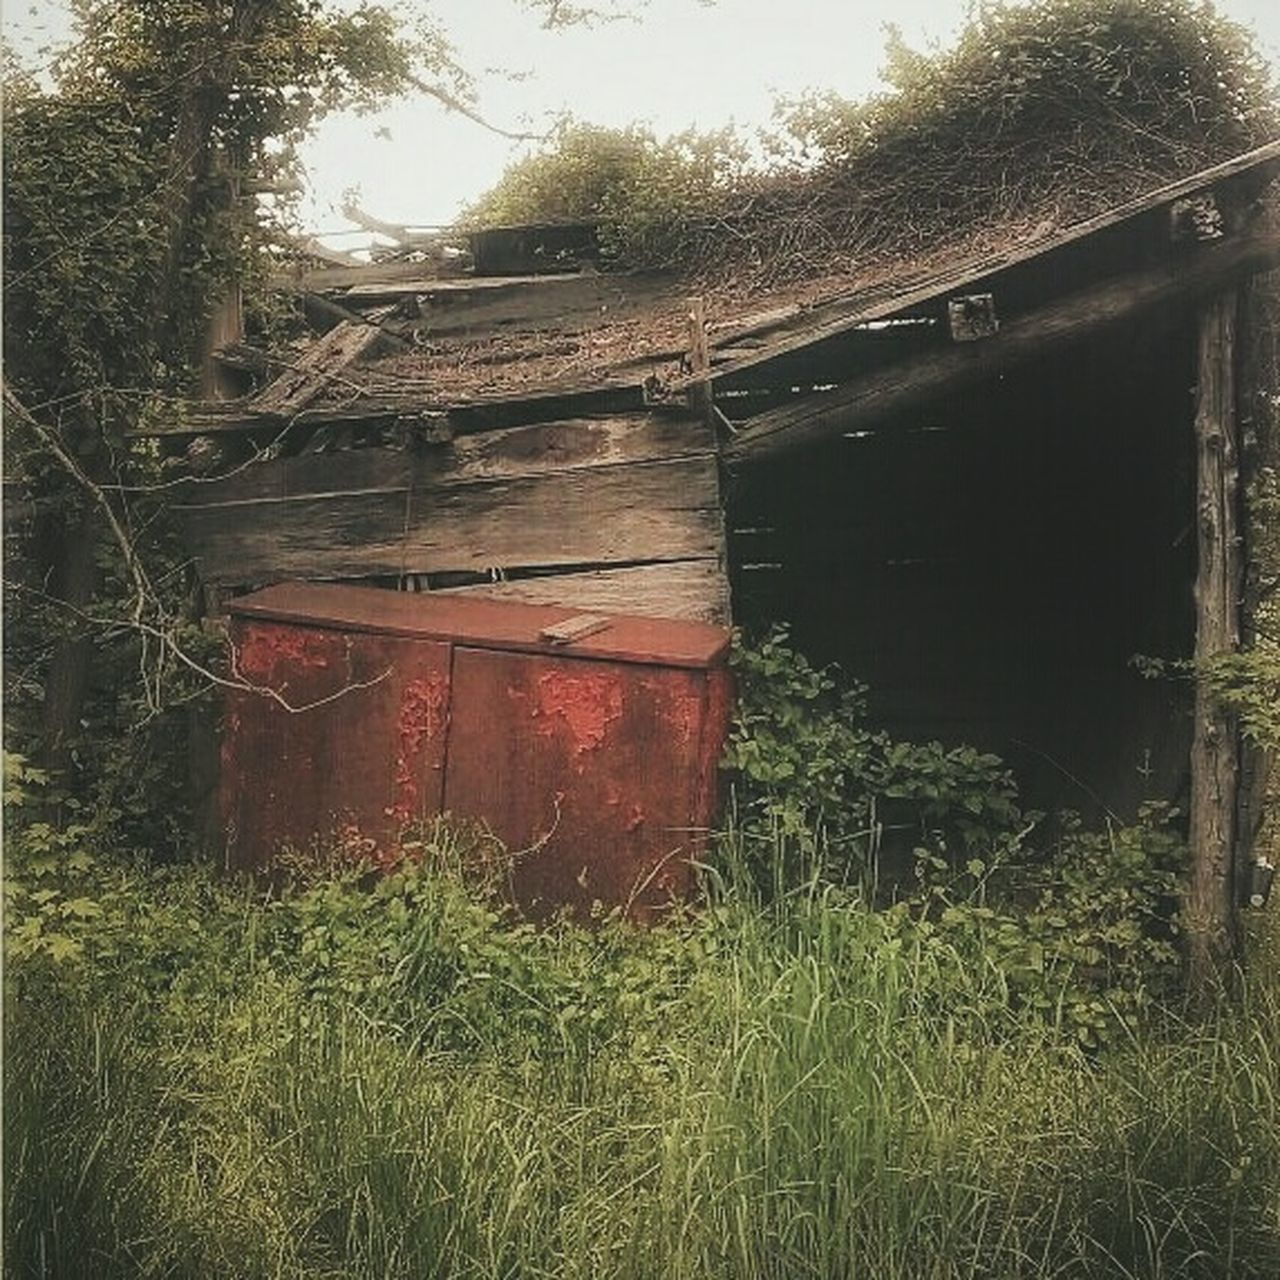 Pandora's Box... AMPt - Abandon Building Exterior Weathered Abandoned Close-up Deterioration Abandoned Buildings Abandoned & Derelict Nature_collection Rural America Rural Scene Creepy Houses Nature Taking Over Rural Exploration Ivy Creepy Building Outdoors Abandoned Places Bad Condition AMPt - My Perspective EyeEm Gallery Low Angle View